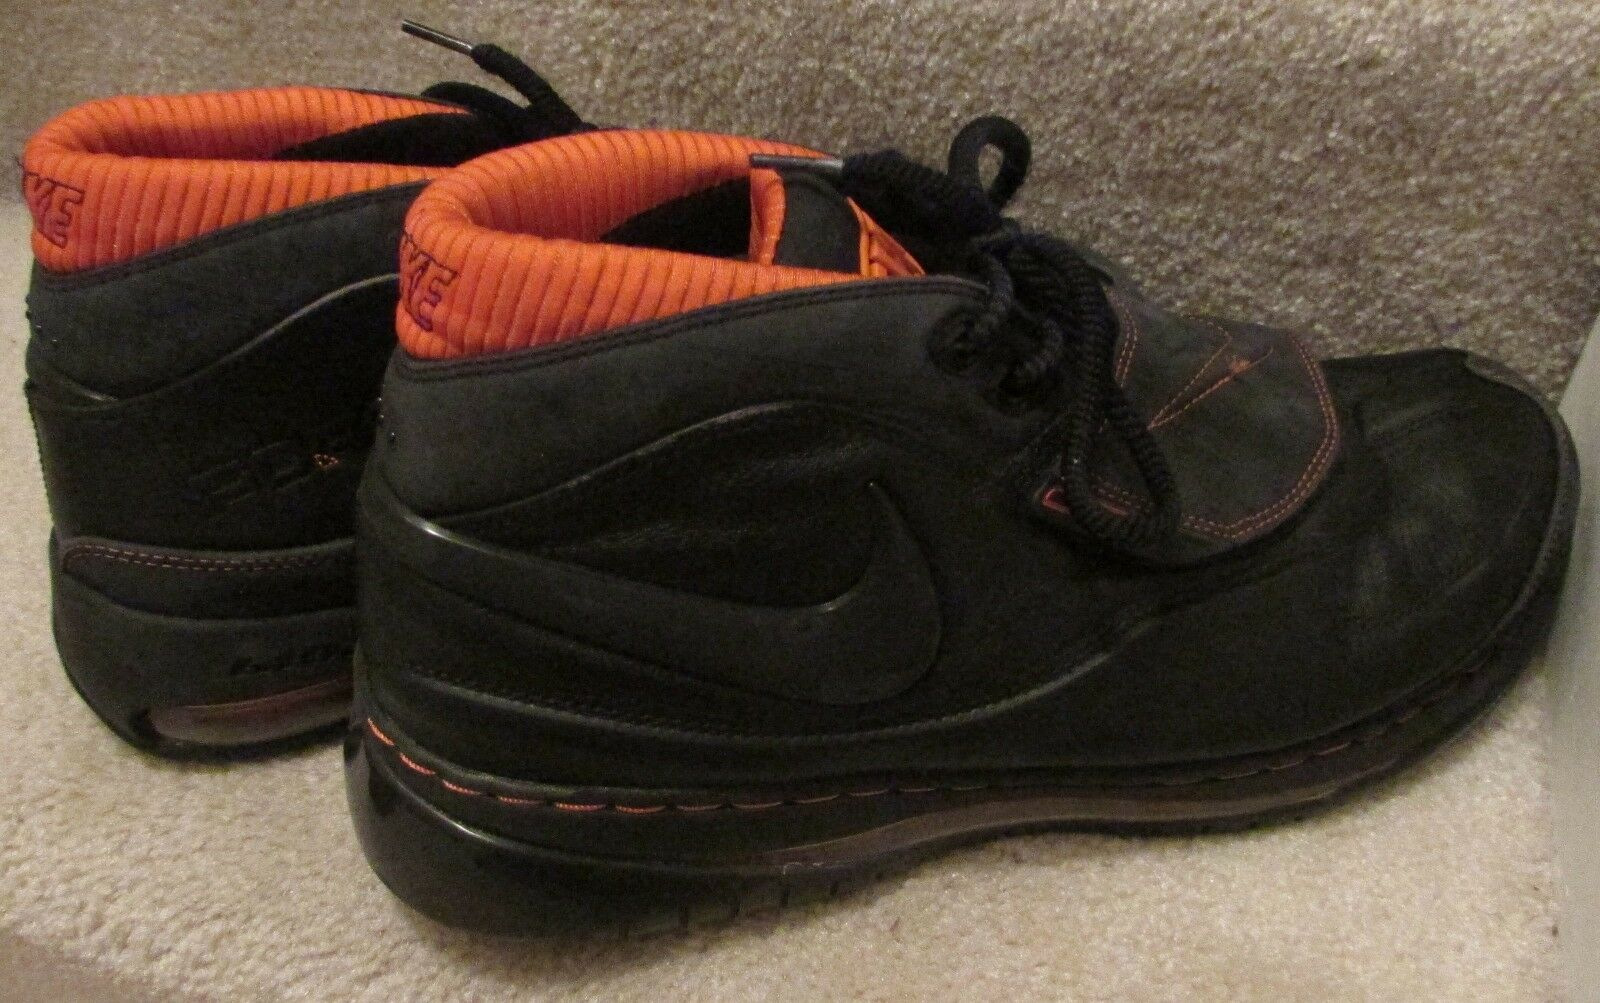 Nike Air Max Force STAT Black Basketball Shoes Size 13 Style 315005-001 EUC